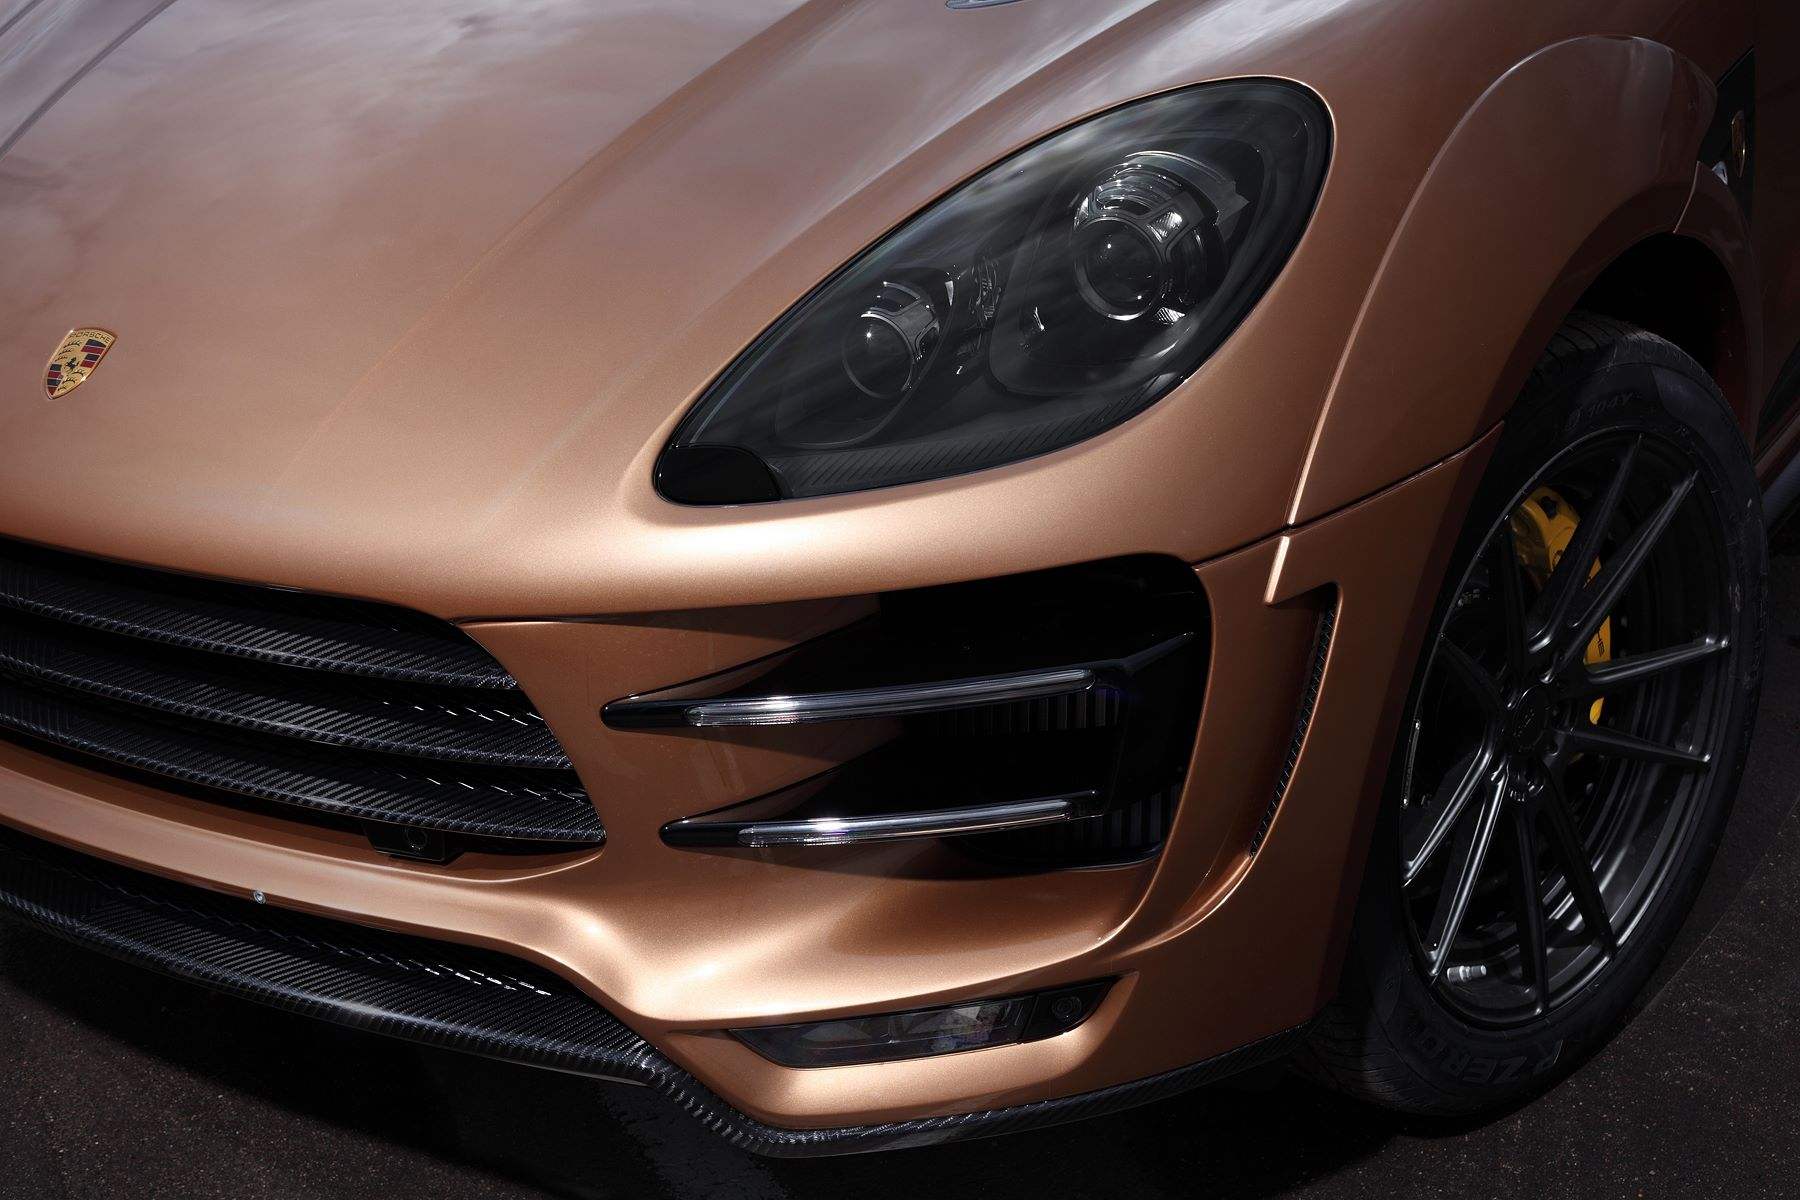 Macan URSA By Topcar Has Gold Colored Carbon Fiber And